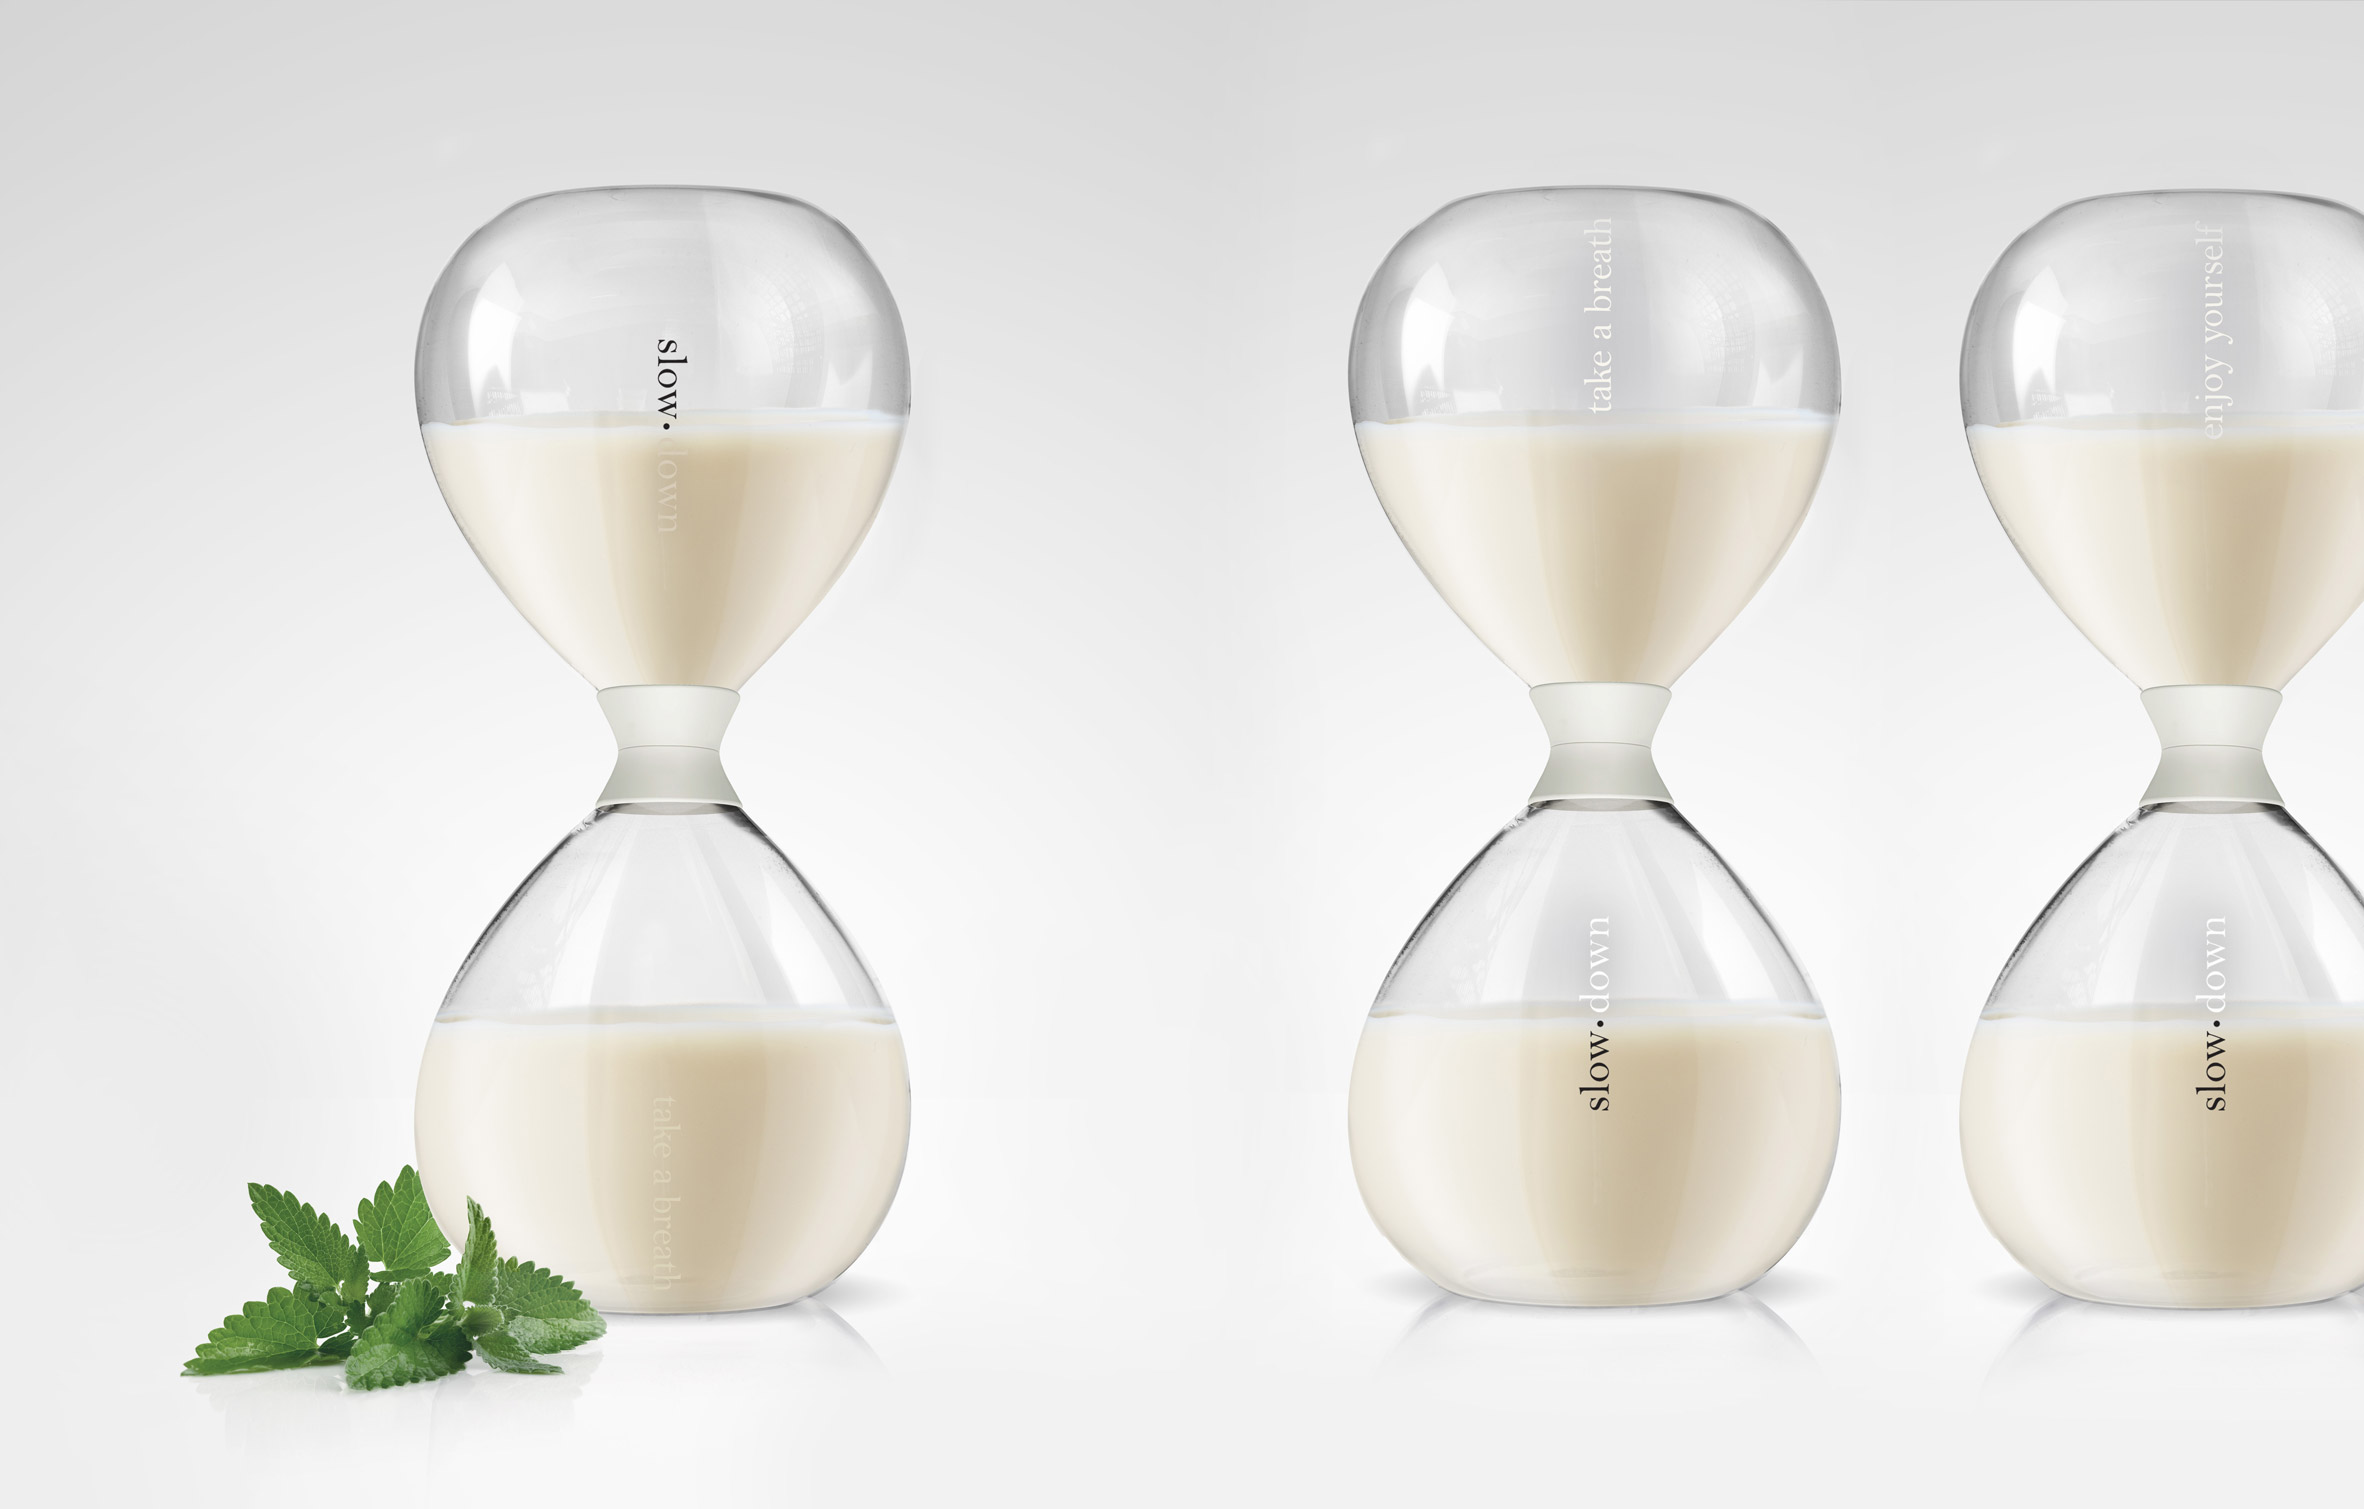 Anti-energy drink Slow comes enclosed in meditative hourglass packaging